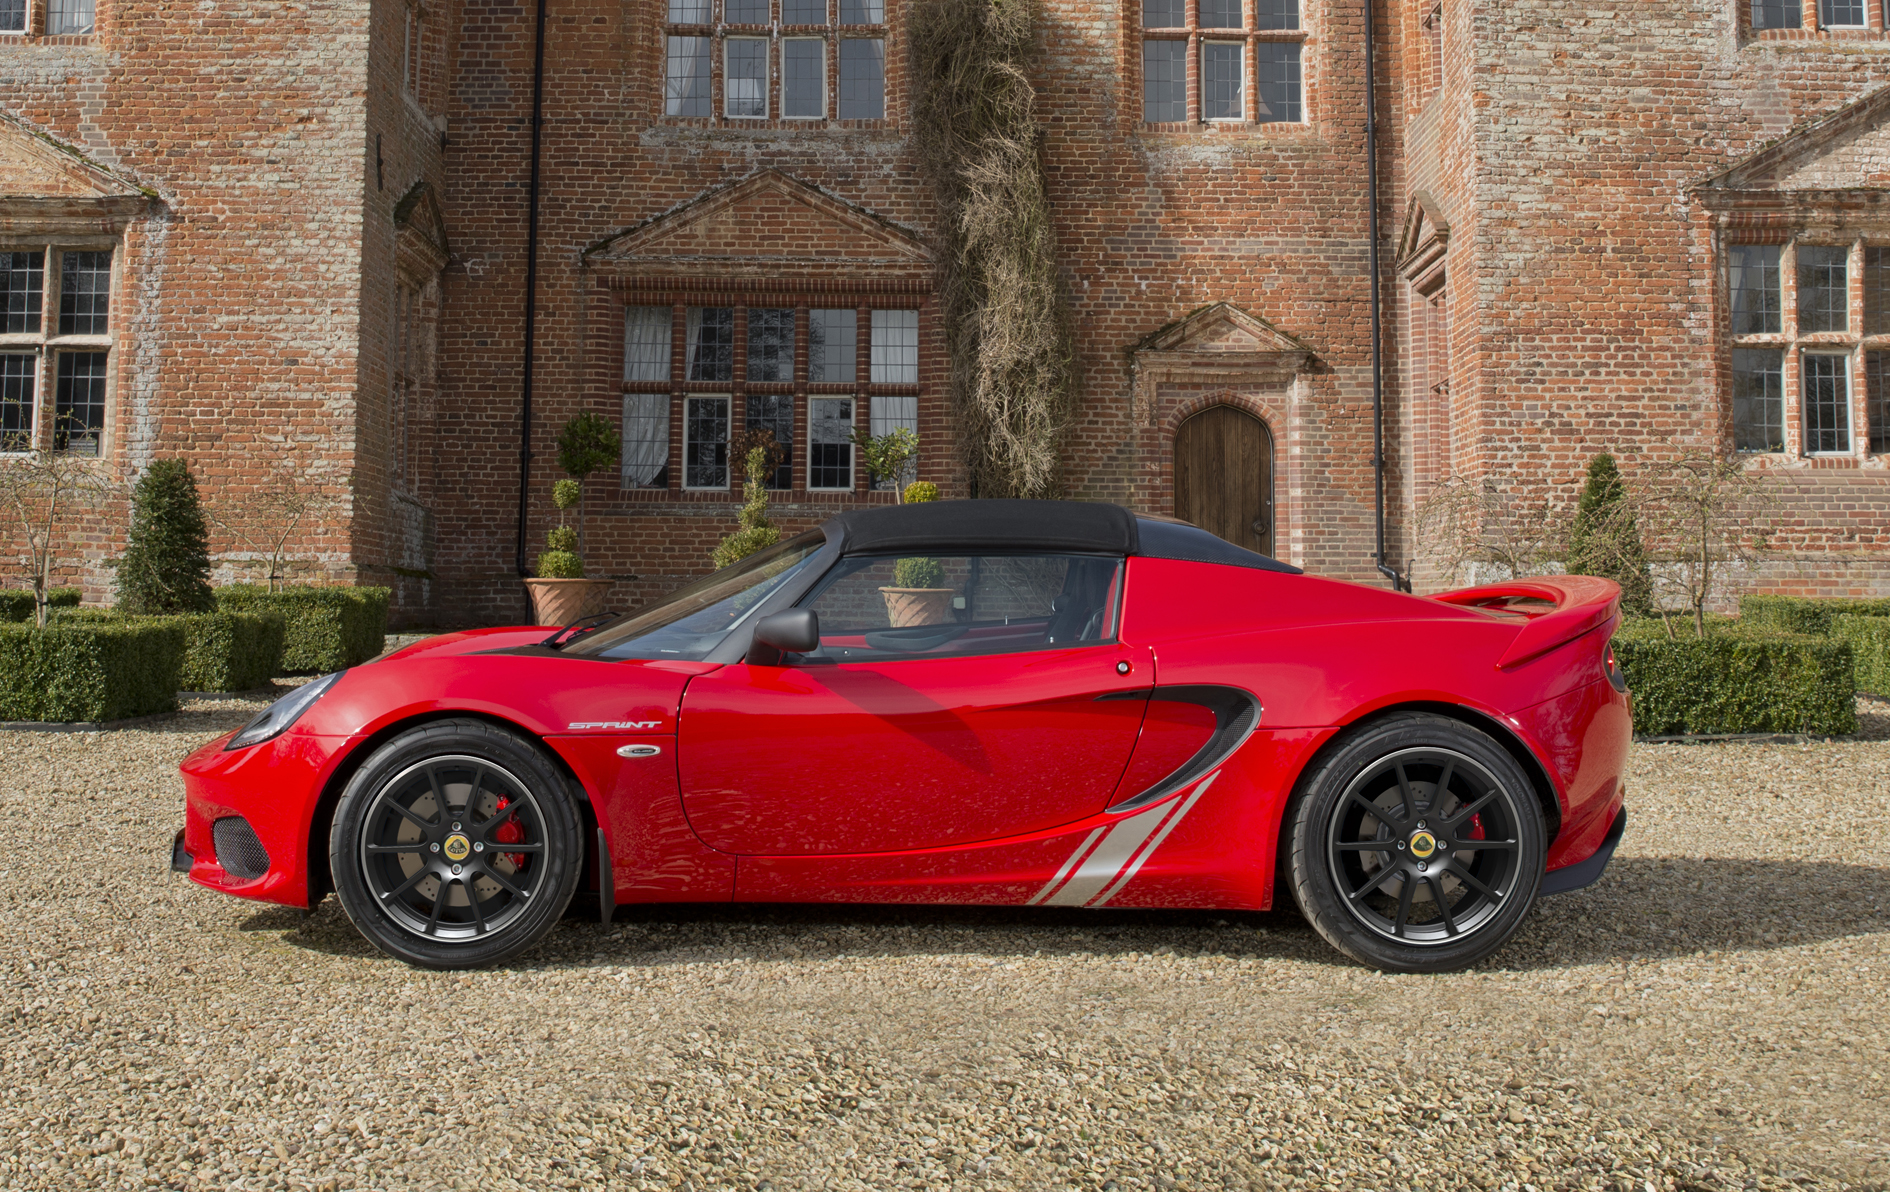 The Sprint edition of the Lotus Elise has removed 41 kg from the previous  model, to reach a benchmark dry weight of just 798 kg.